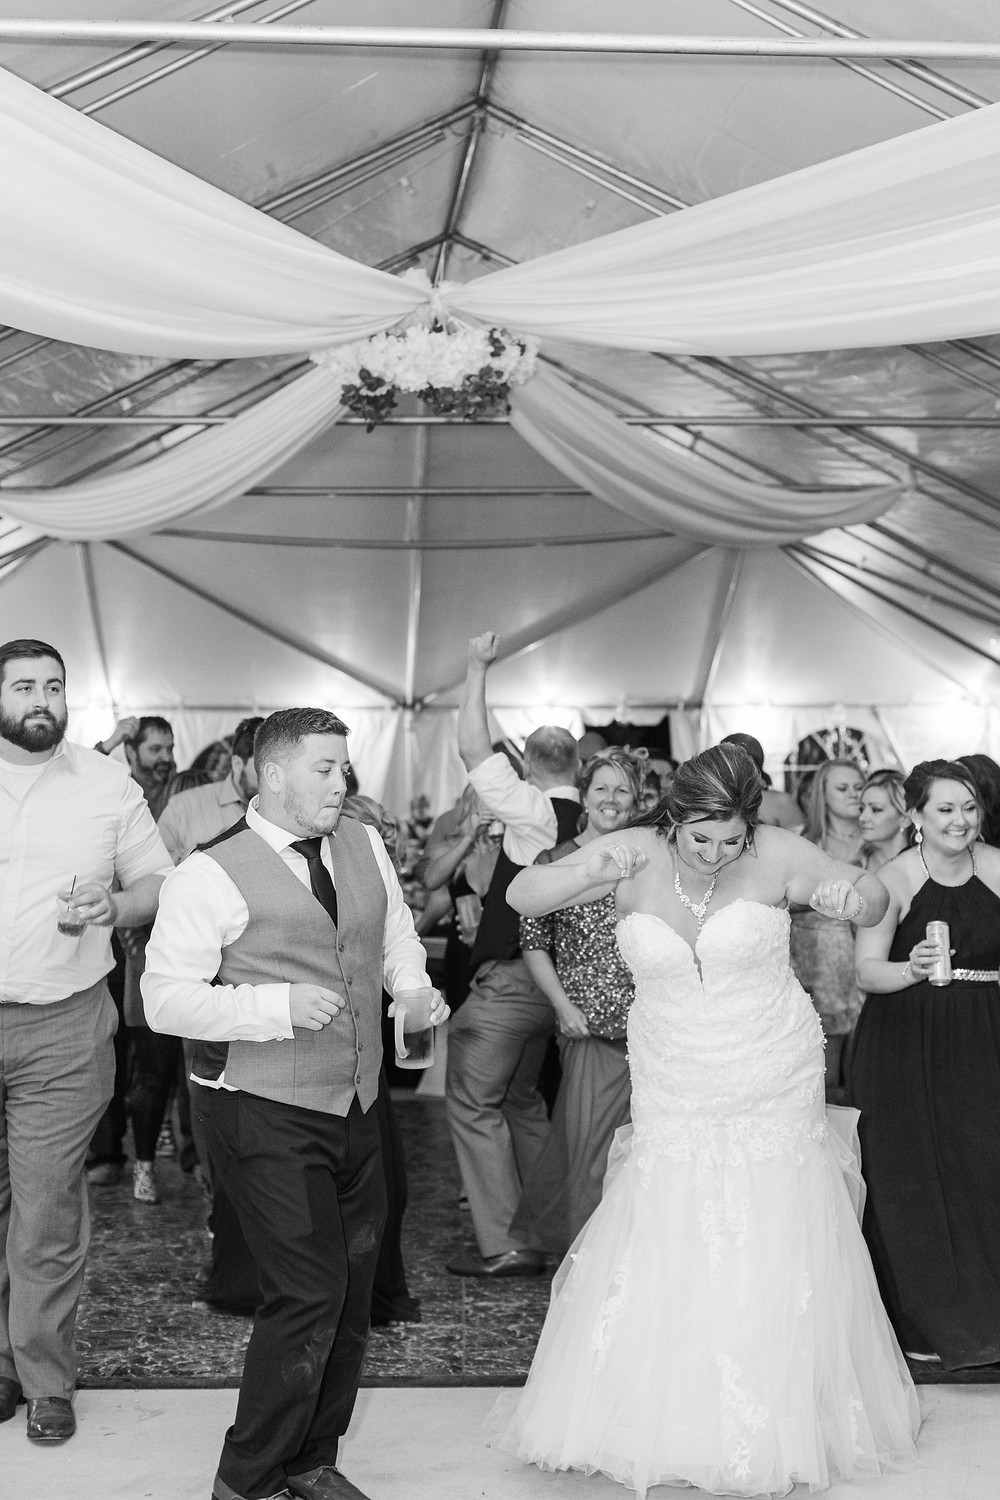 Bride and groom dancing cute couple wedding American 1 event center Jackson michigan